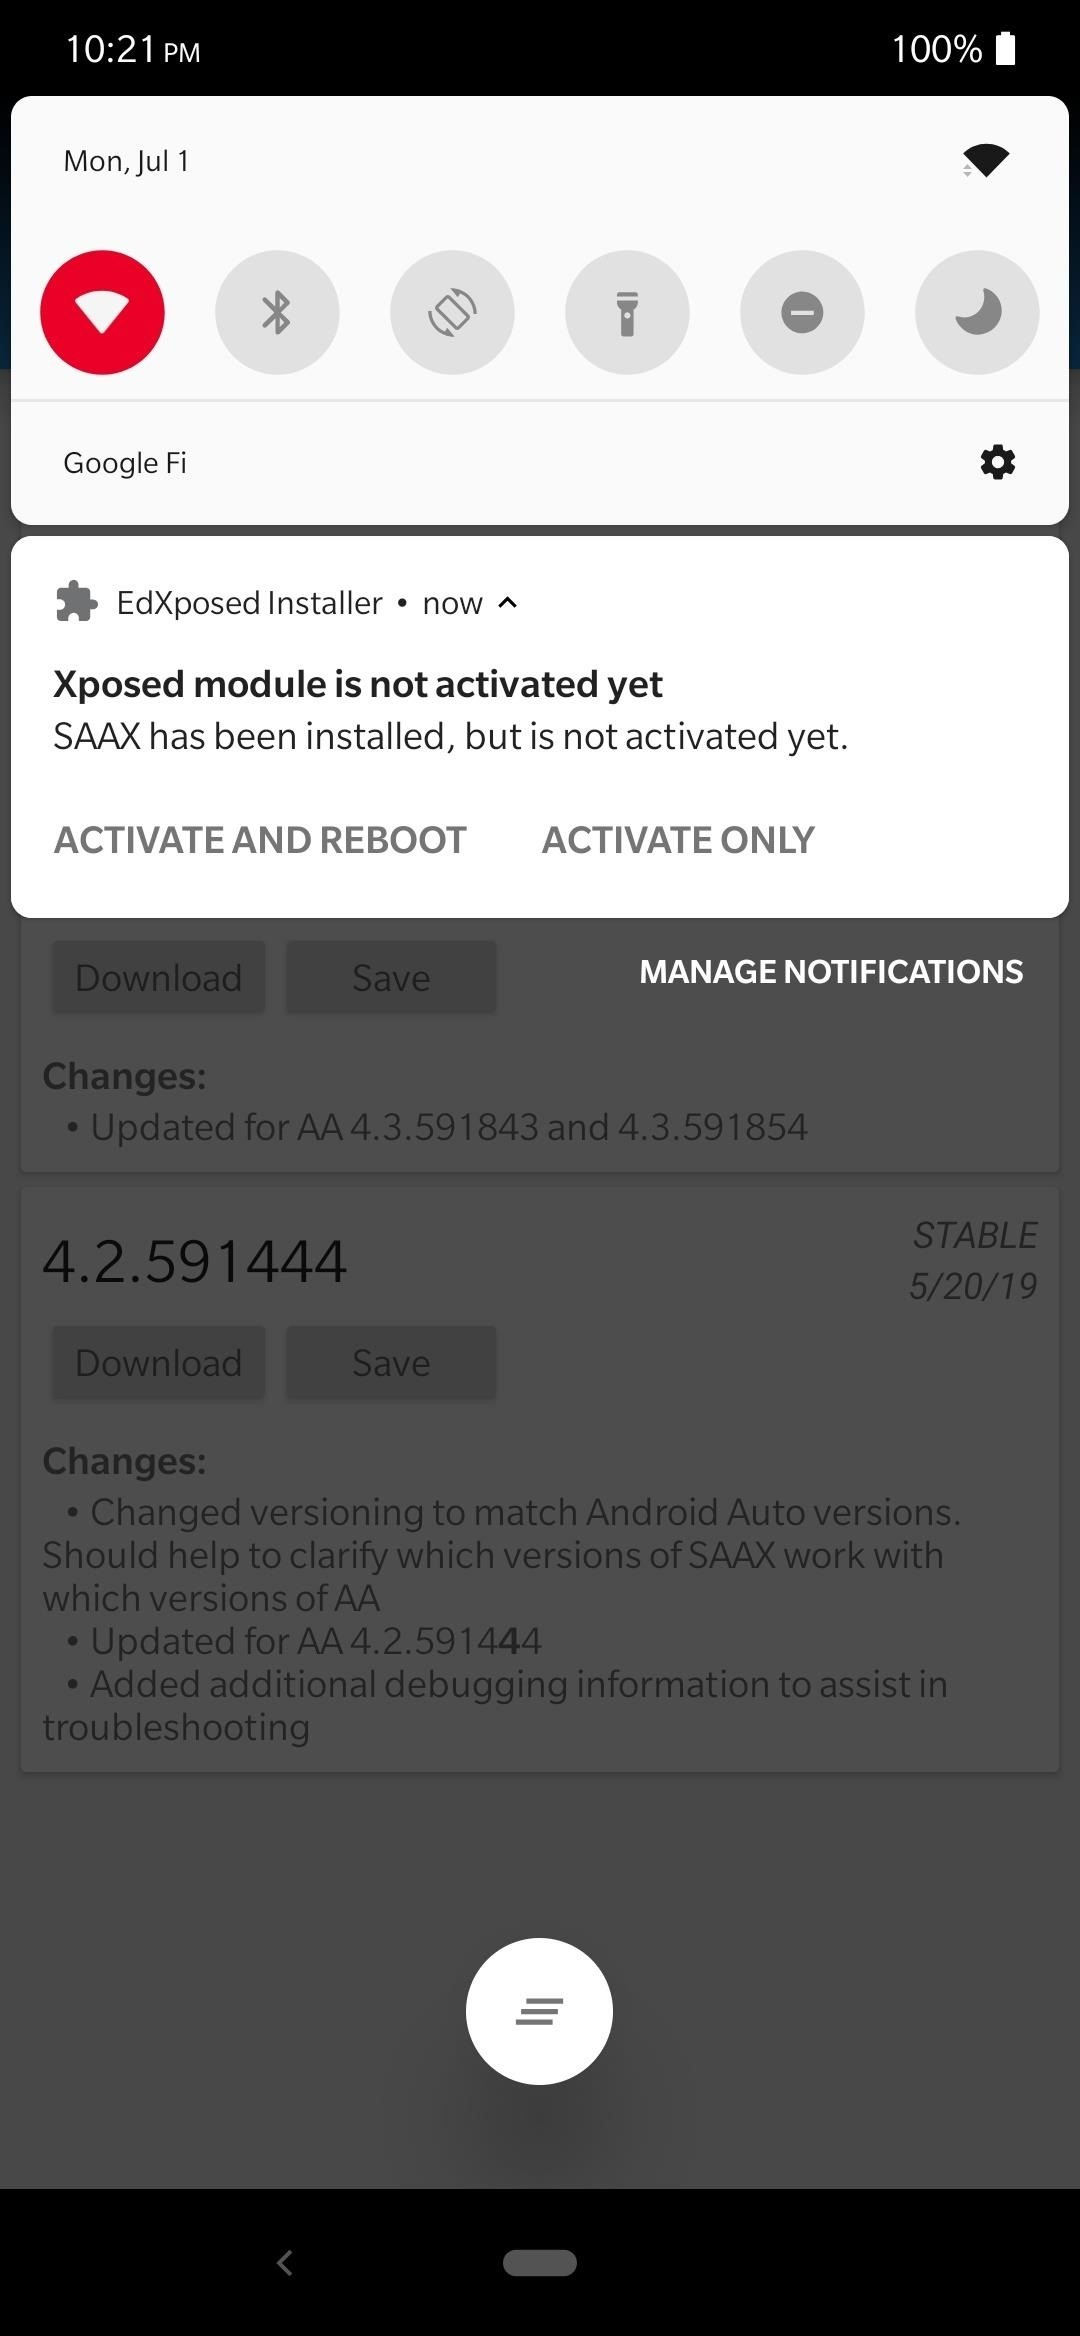 How to Install Systemless Xposed on Almost Any Android Phone